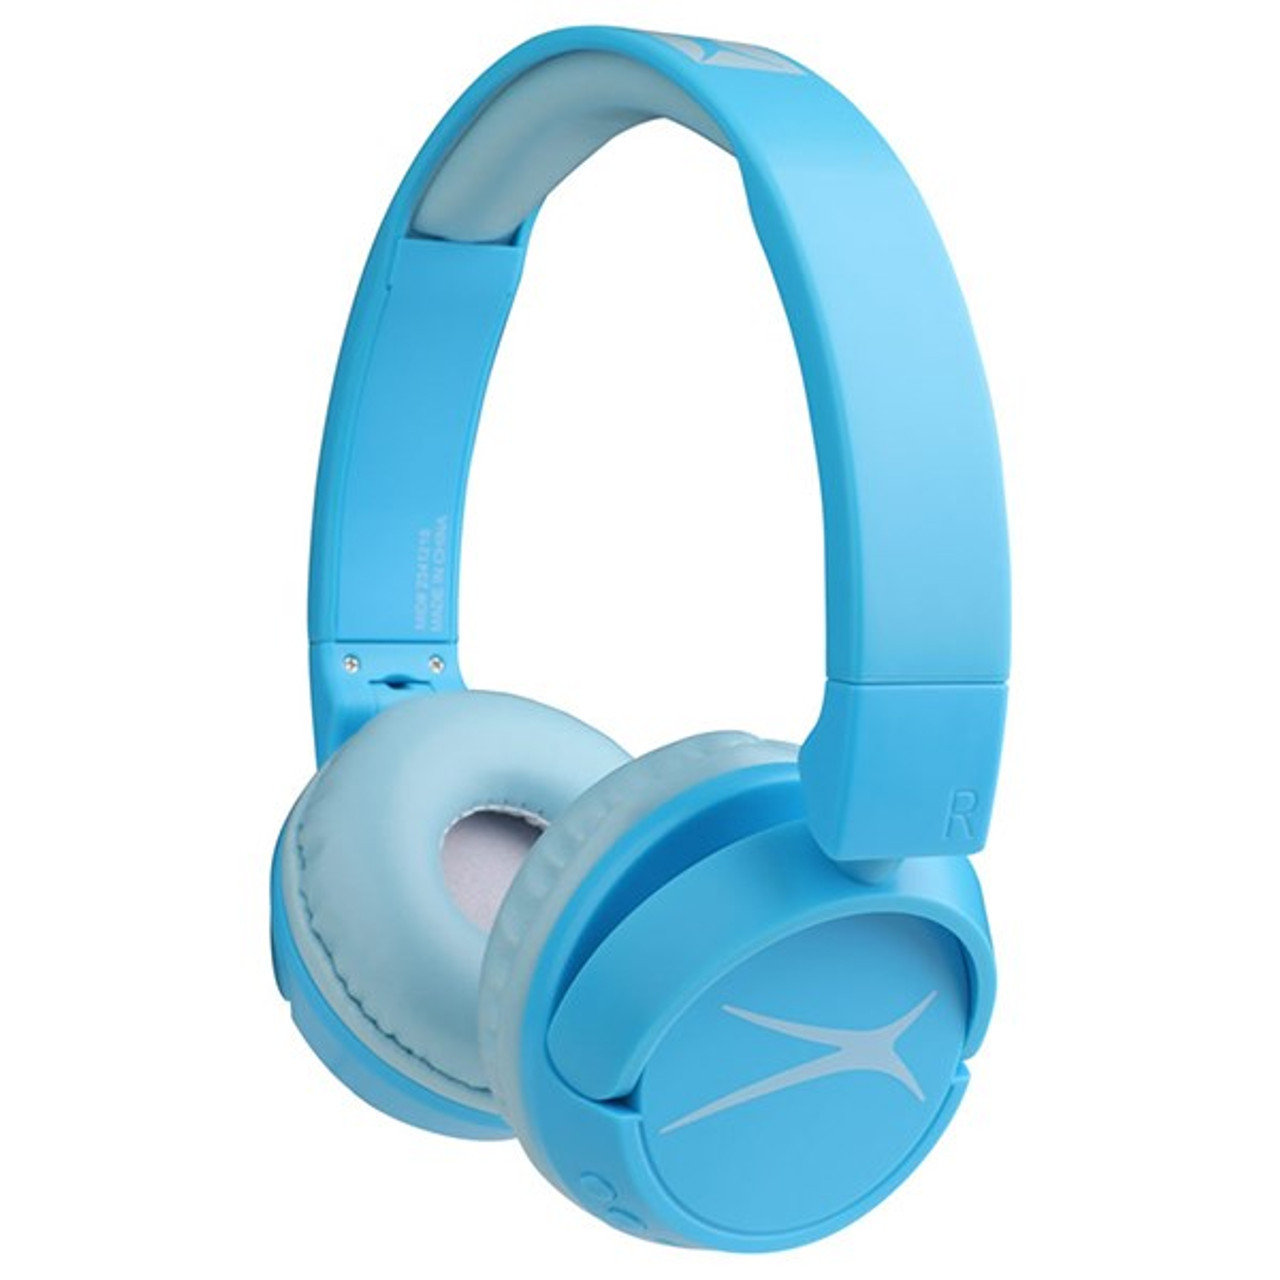 Image for Altec Lansing MZX250 Bluetooth Headphones - Blue CX Computer Superstore